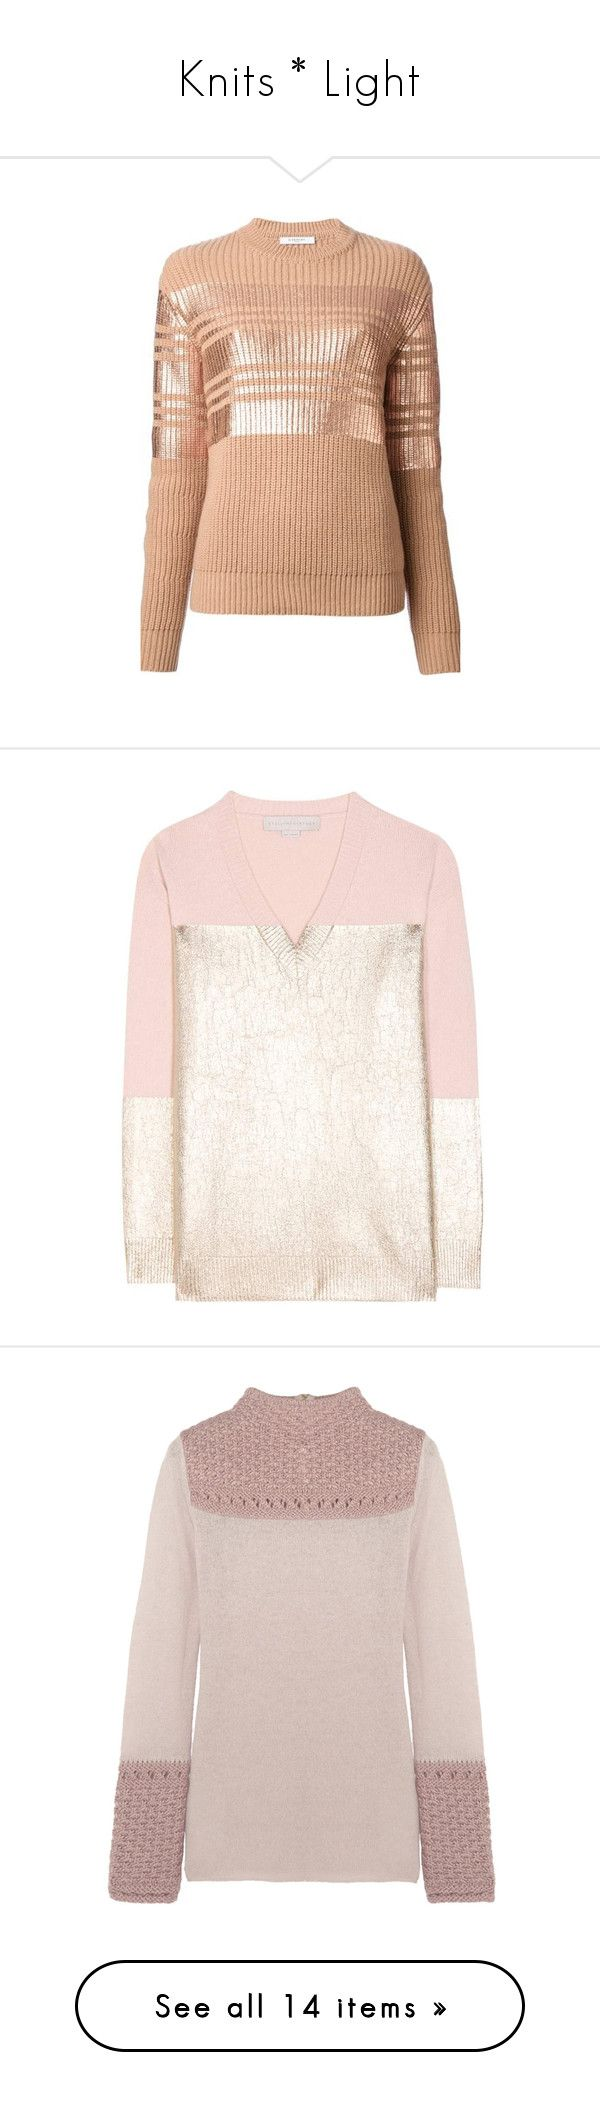 """""""Knits * Light"""" by purplehazexxx ❤ liked on Polyvore featuring tops, sweaters, givenchy, blusas, beige, long sleeve tops, red top, metallic sweater, ribbed sweater and wool sweaters"""